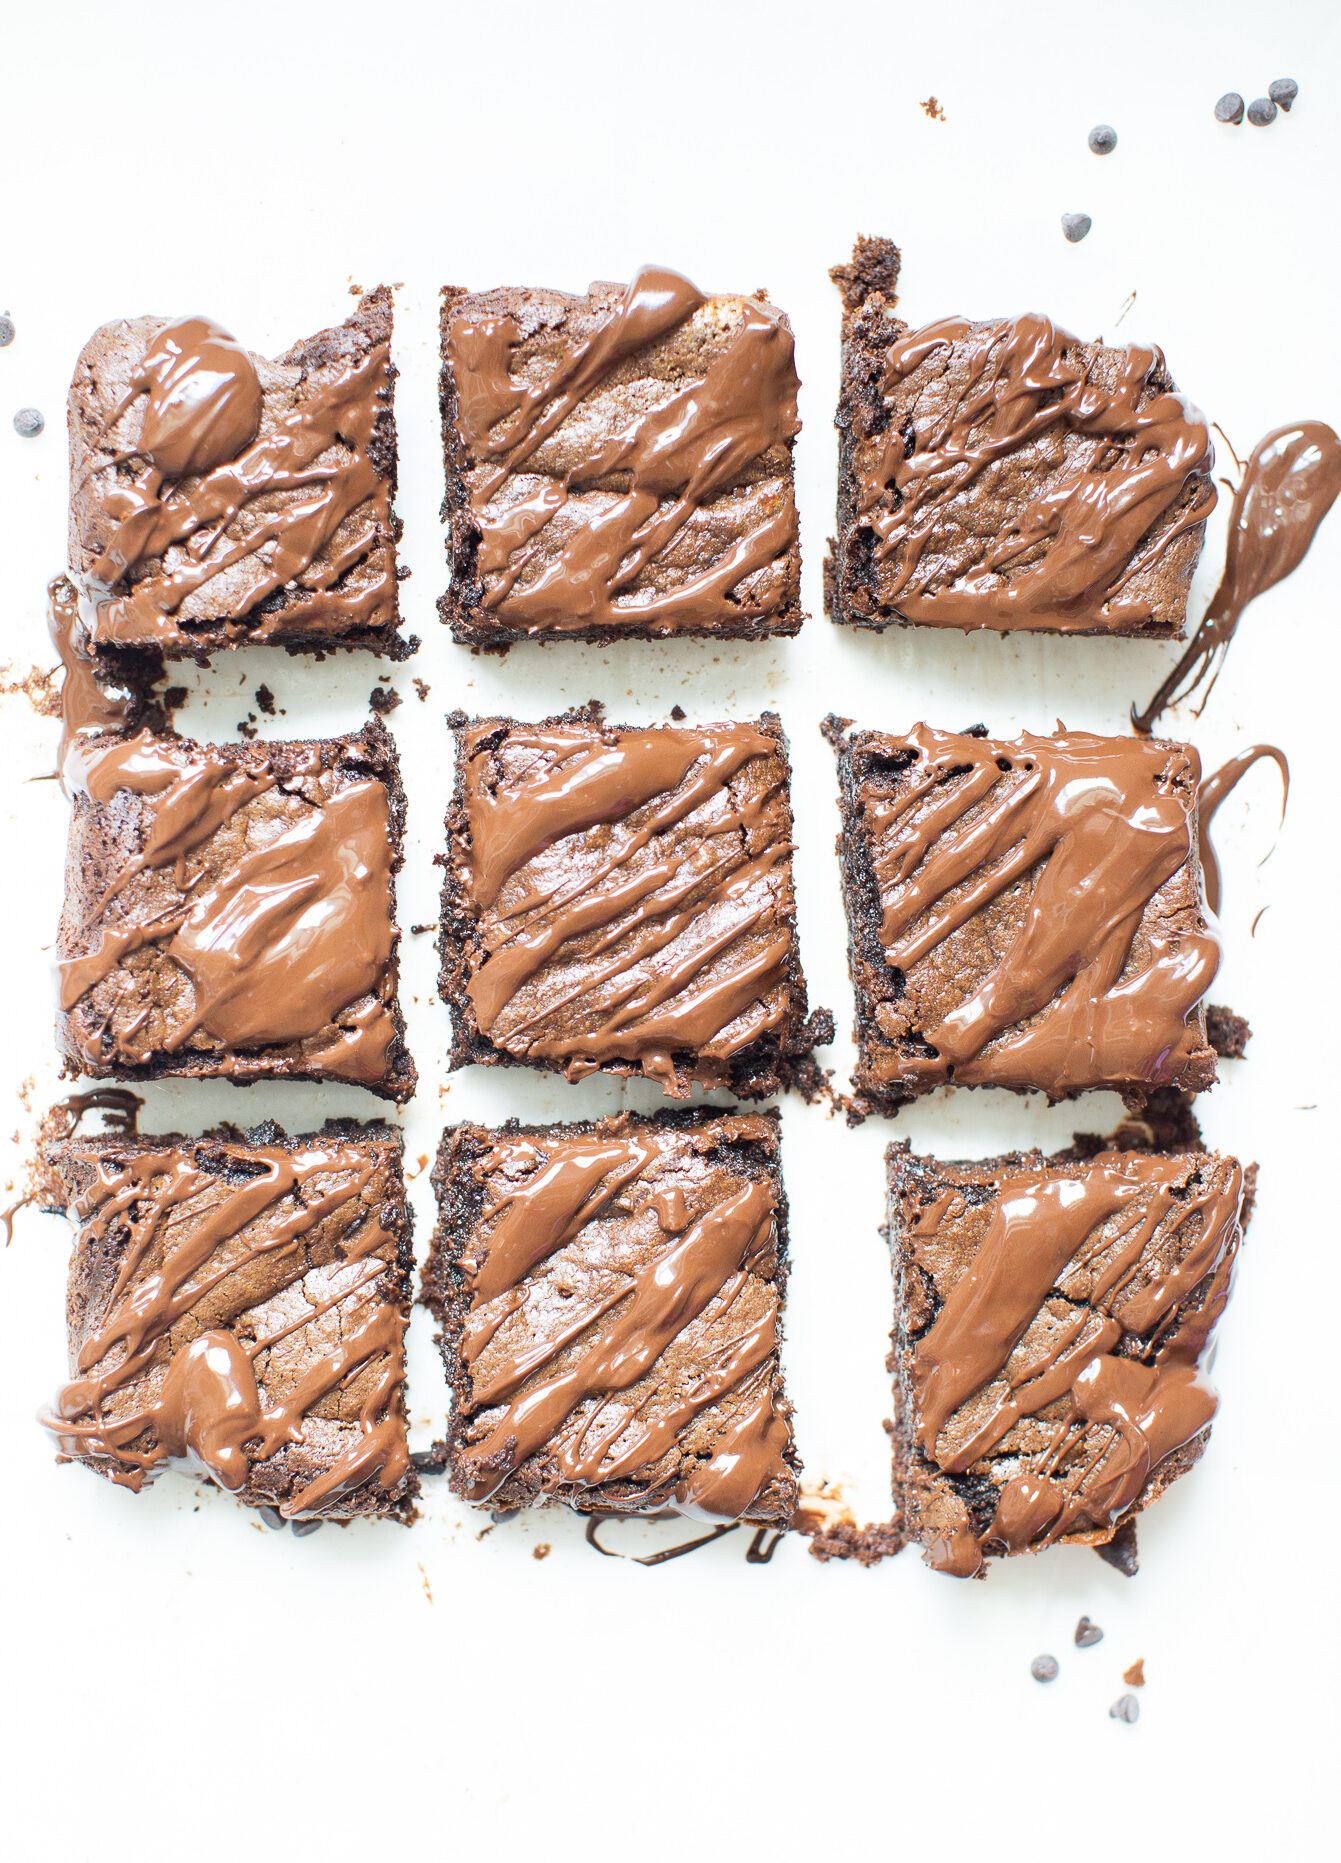 More than 100+ amazing recipes for the Jewish holiday of Passover, including a bunch of go-to, favorite Pesach recipes to make for Seder dinner, including appetizers, side dishes, and desserts, with plenty that work as great leftovers for the holiday week to follow.   glitterinc.com   @glitterinc // Fudgy Tahini Brownies